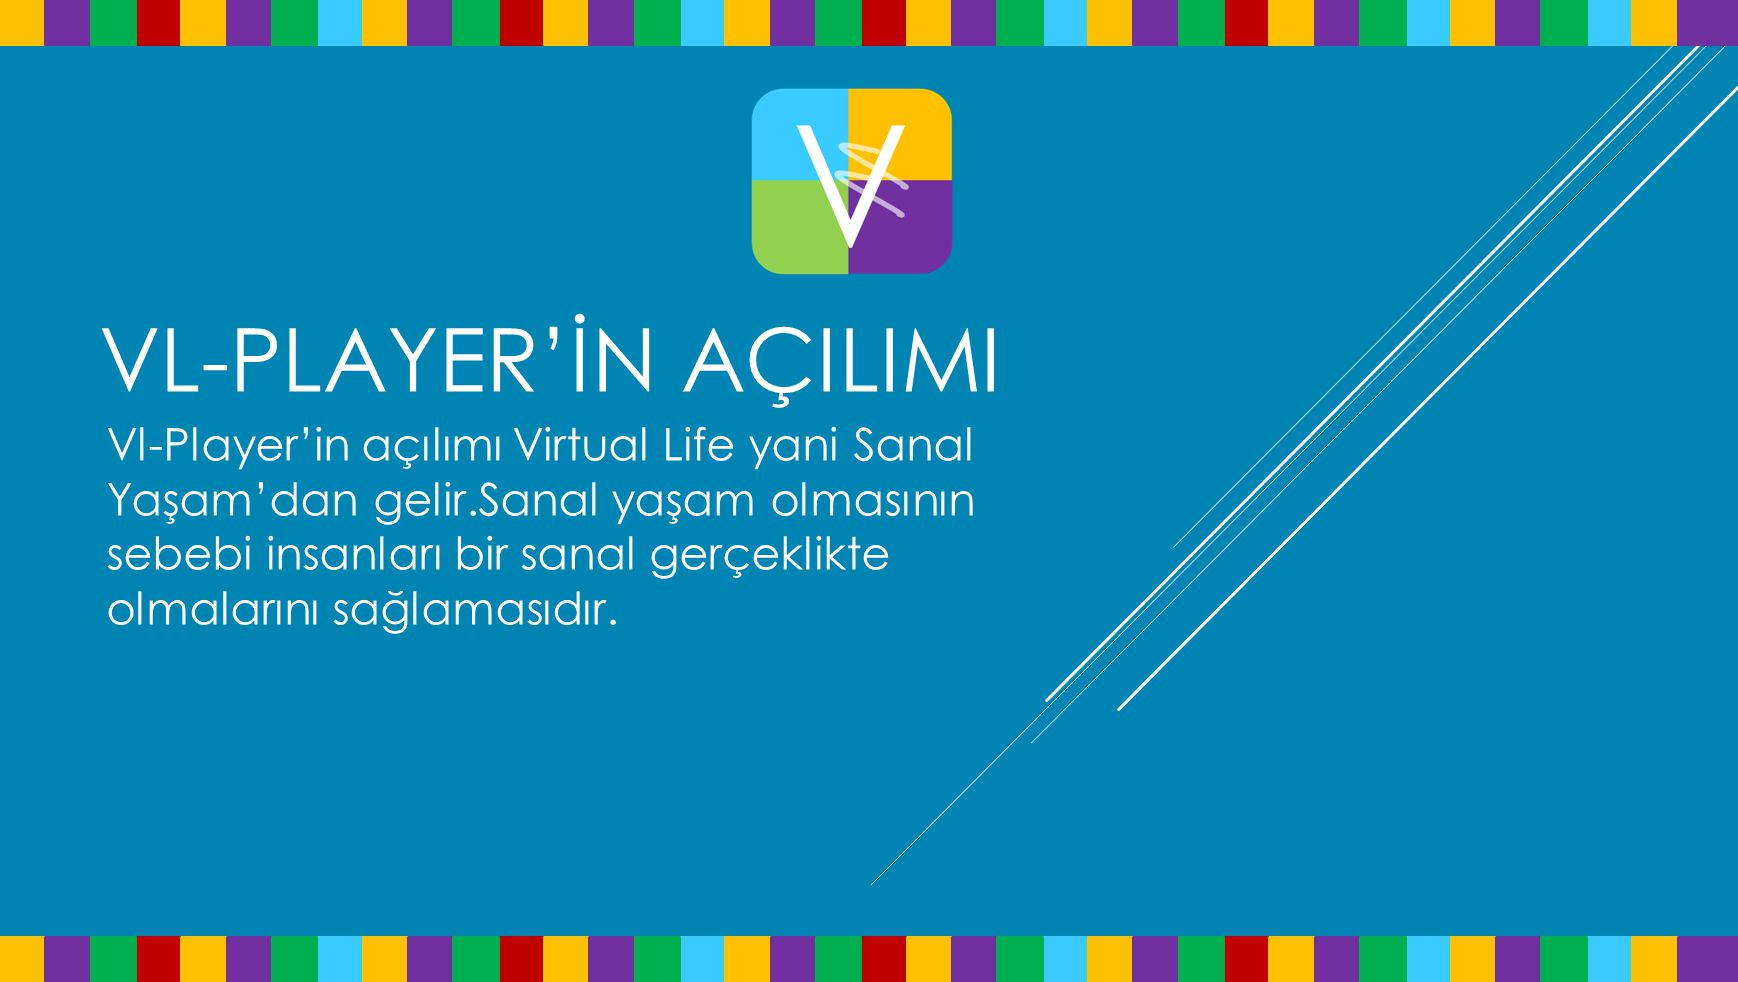 VL-PLAYER'İN açIlImI